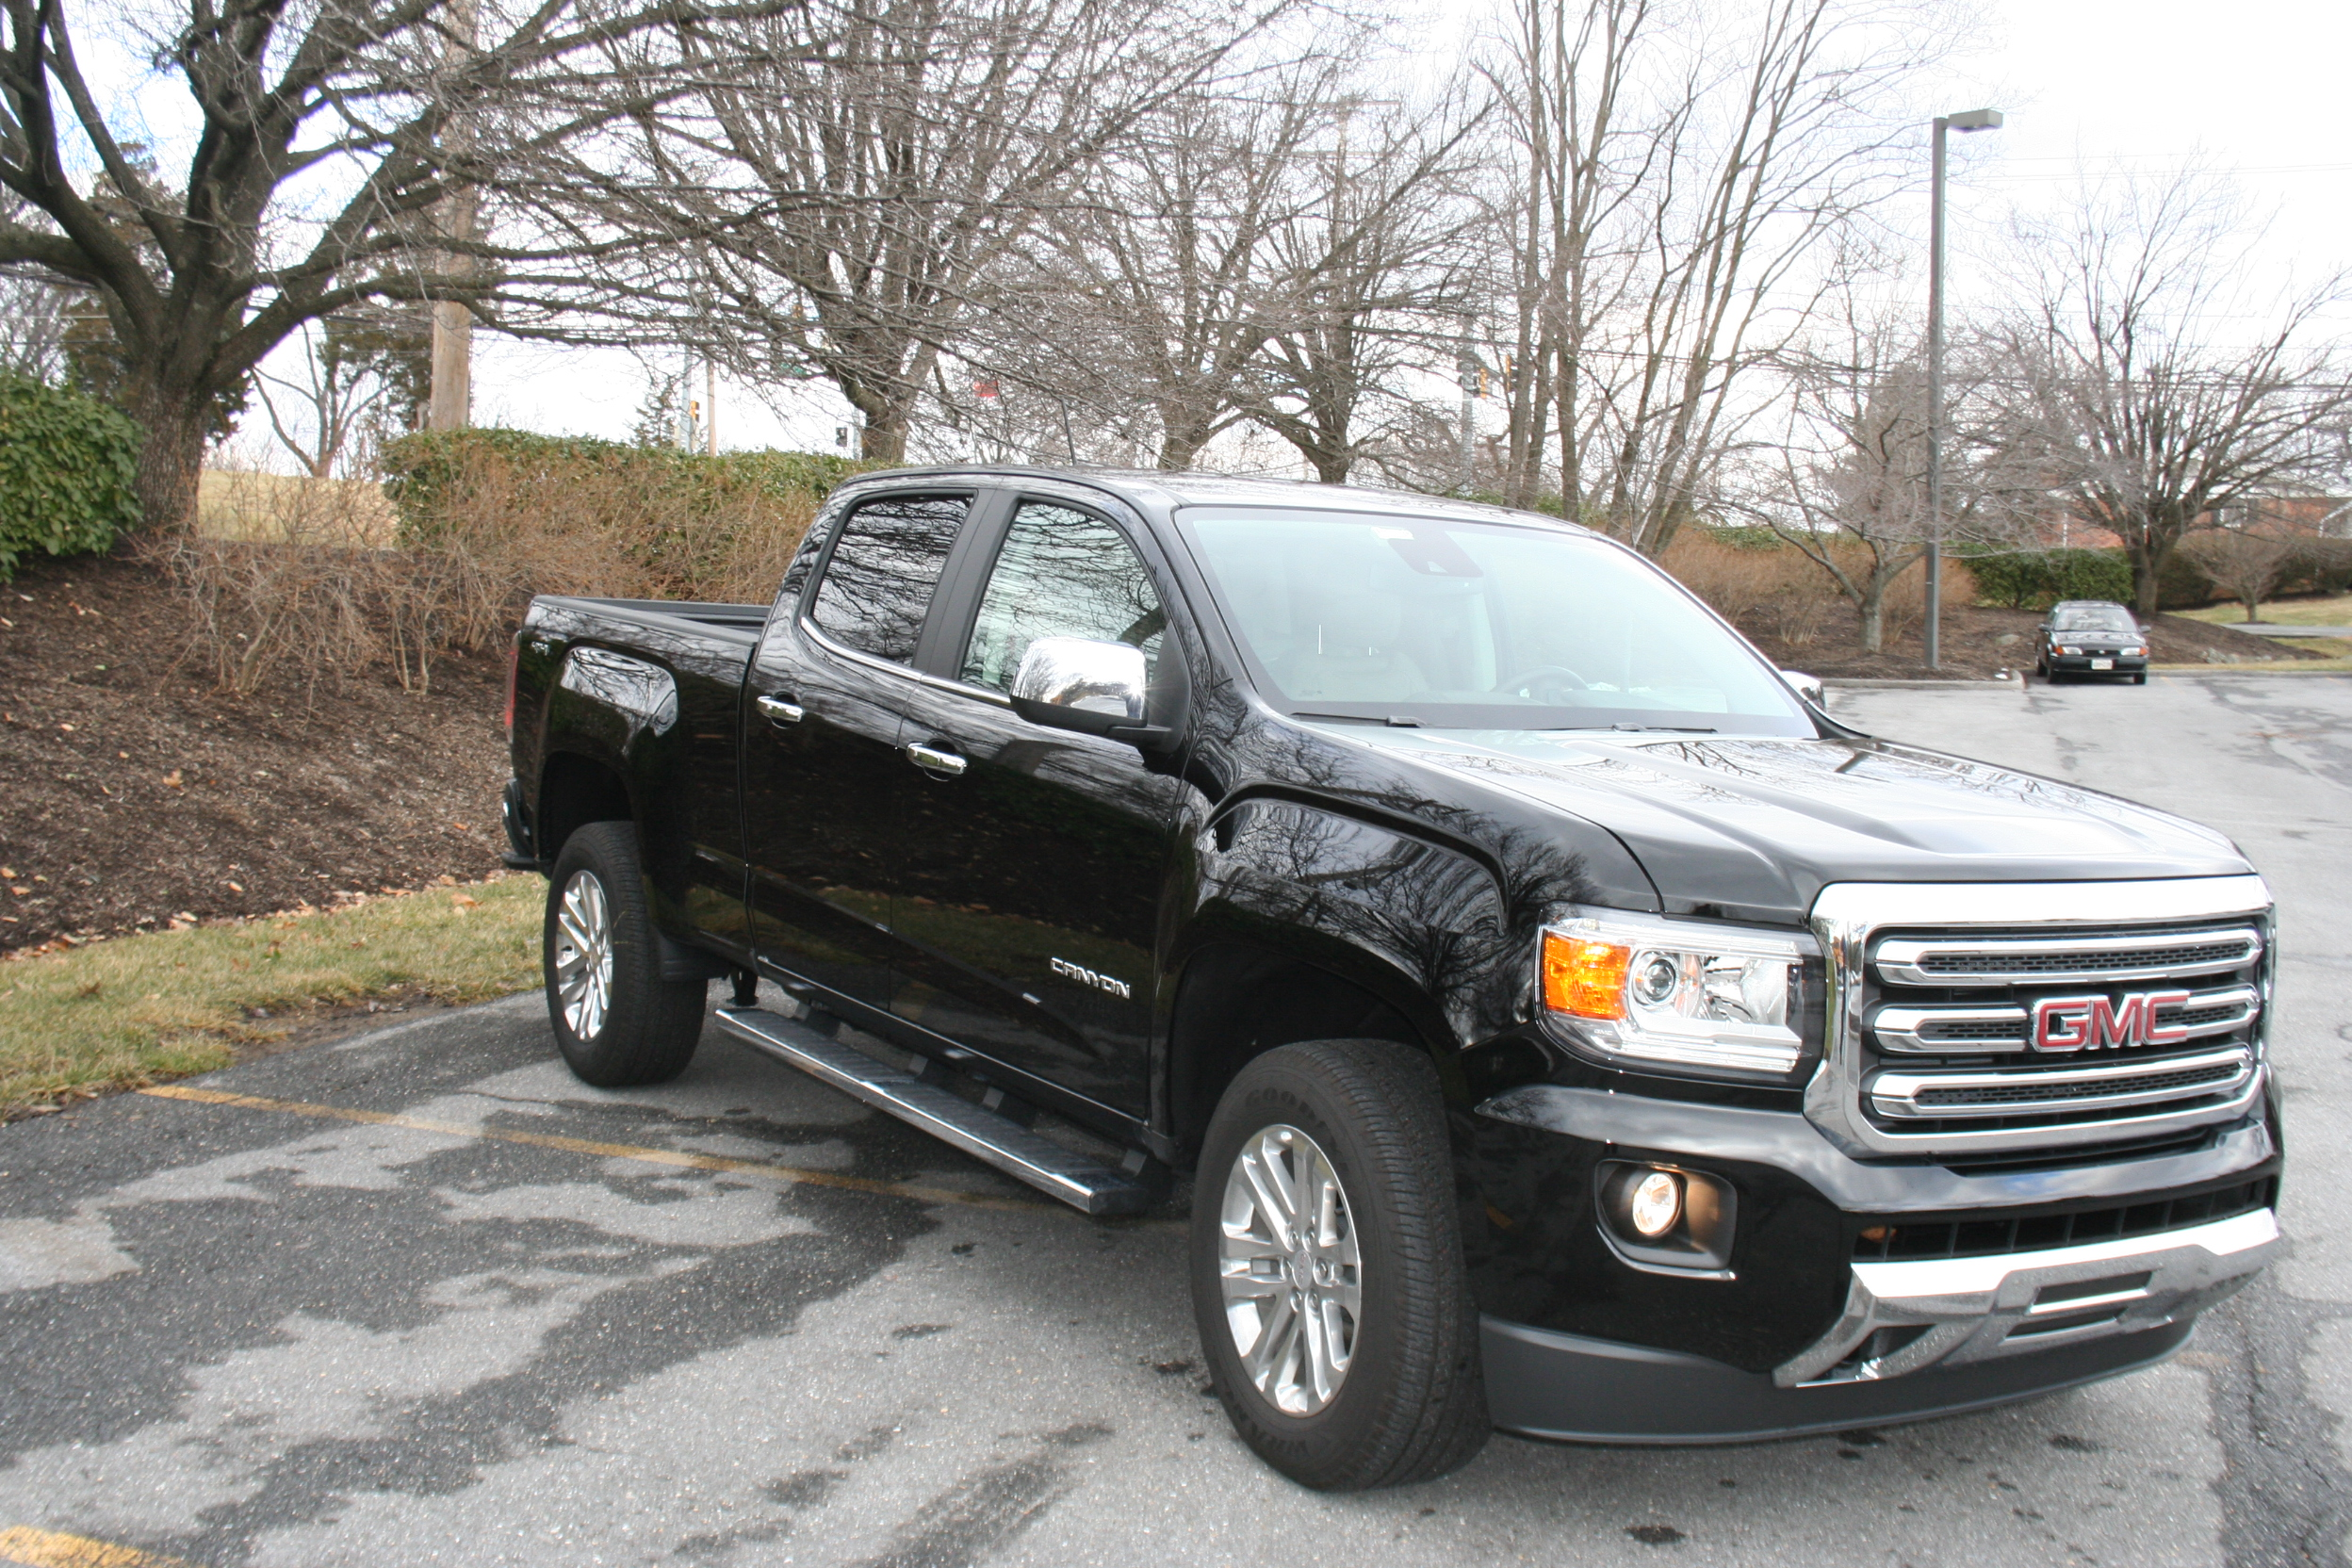 Car Report: The 2015 GMC Canyon is a refined cruiser and right-sized for the street